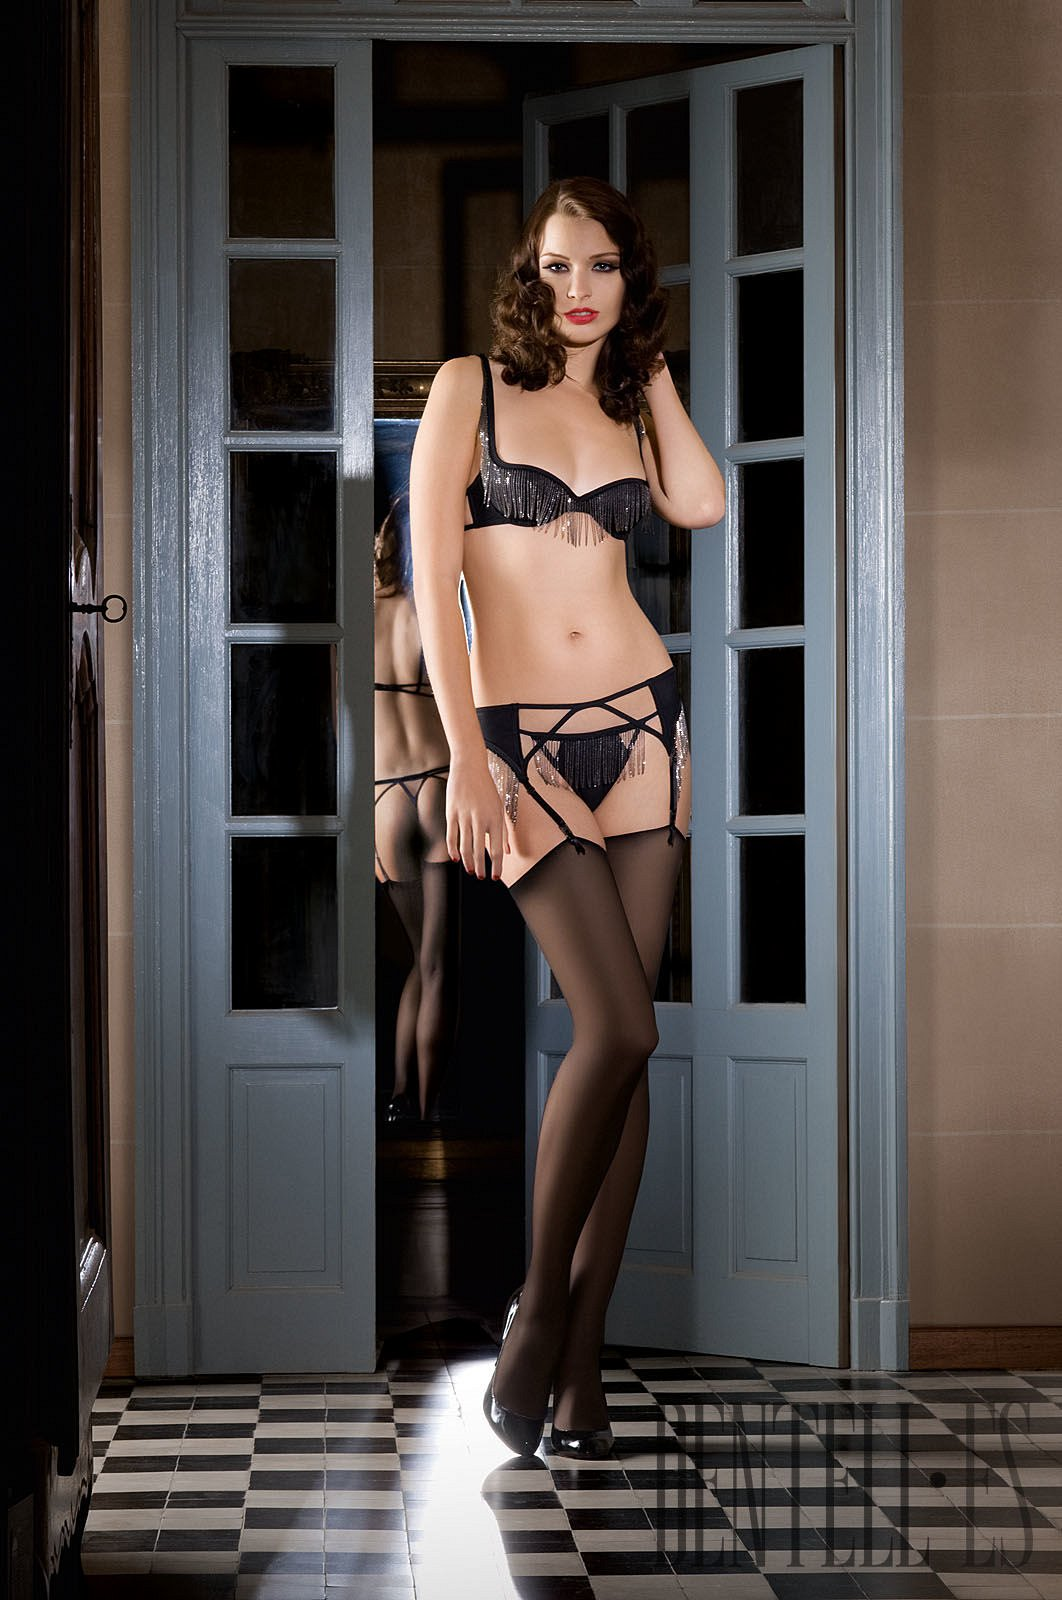 Maison close spring summer 2012 lingerie for A la maison close